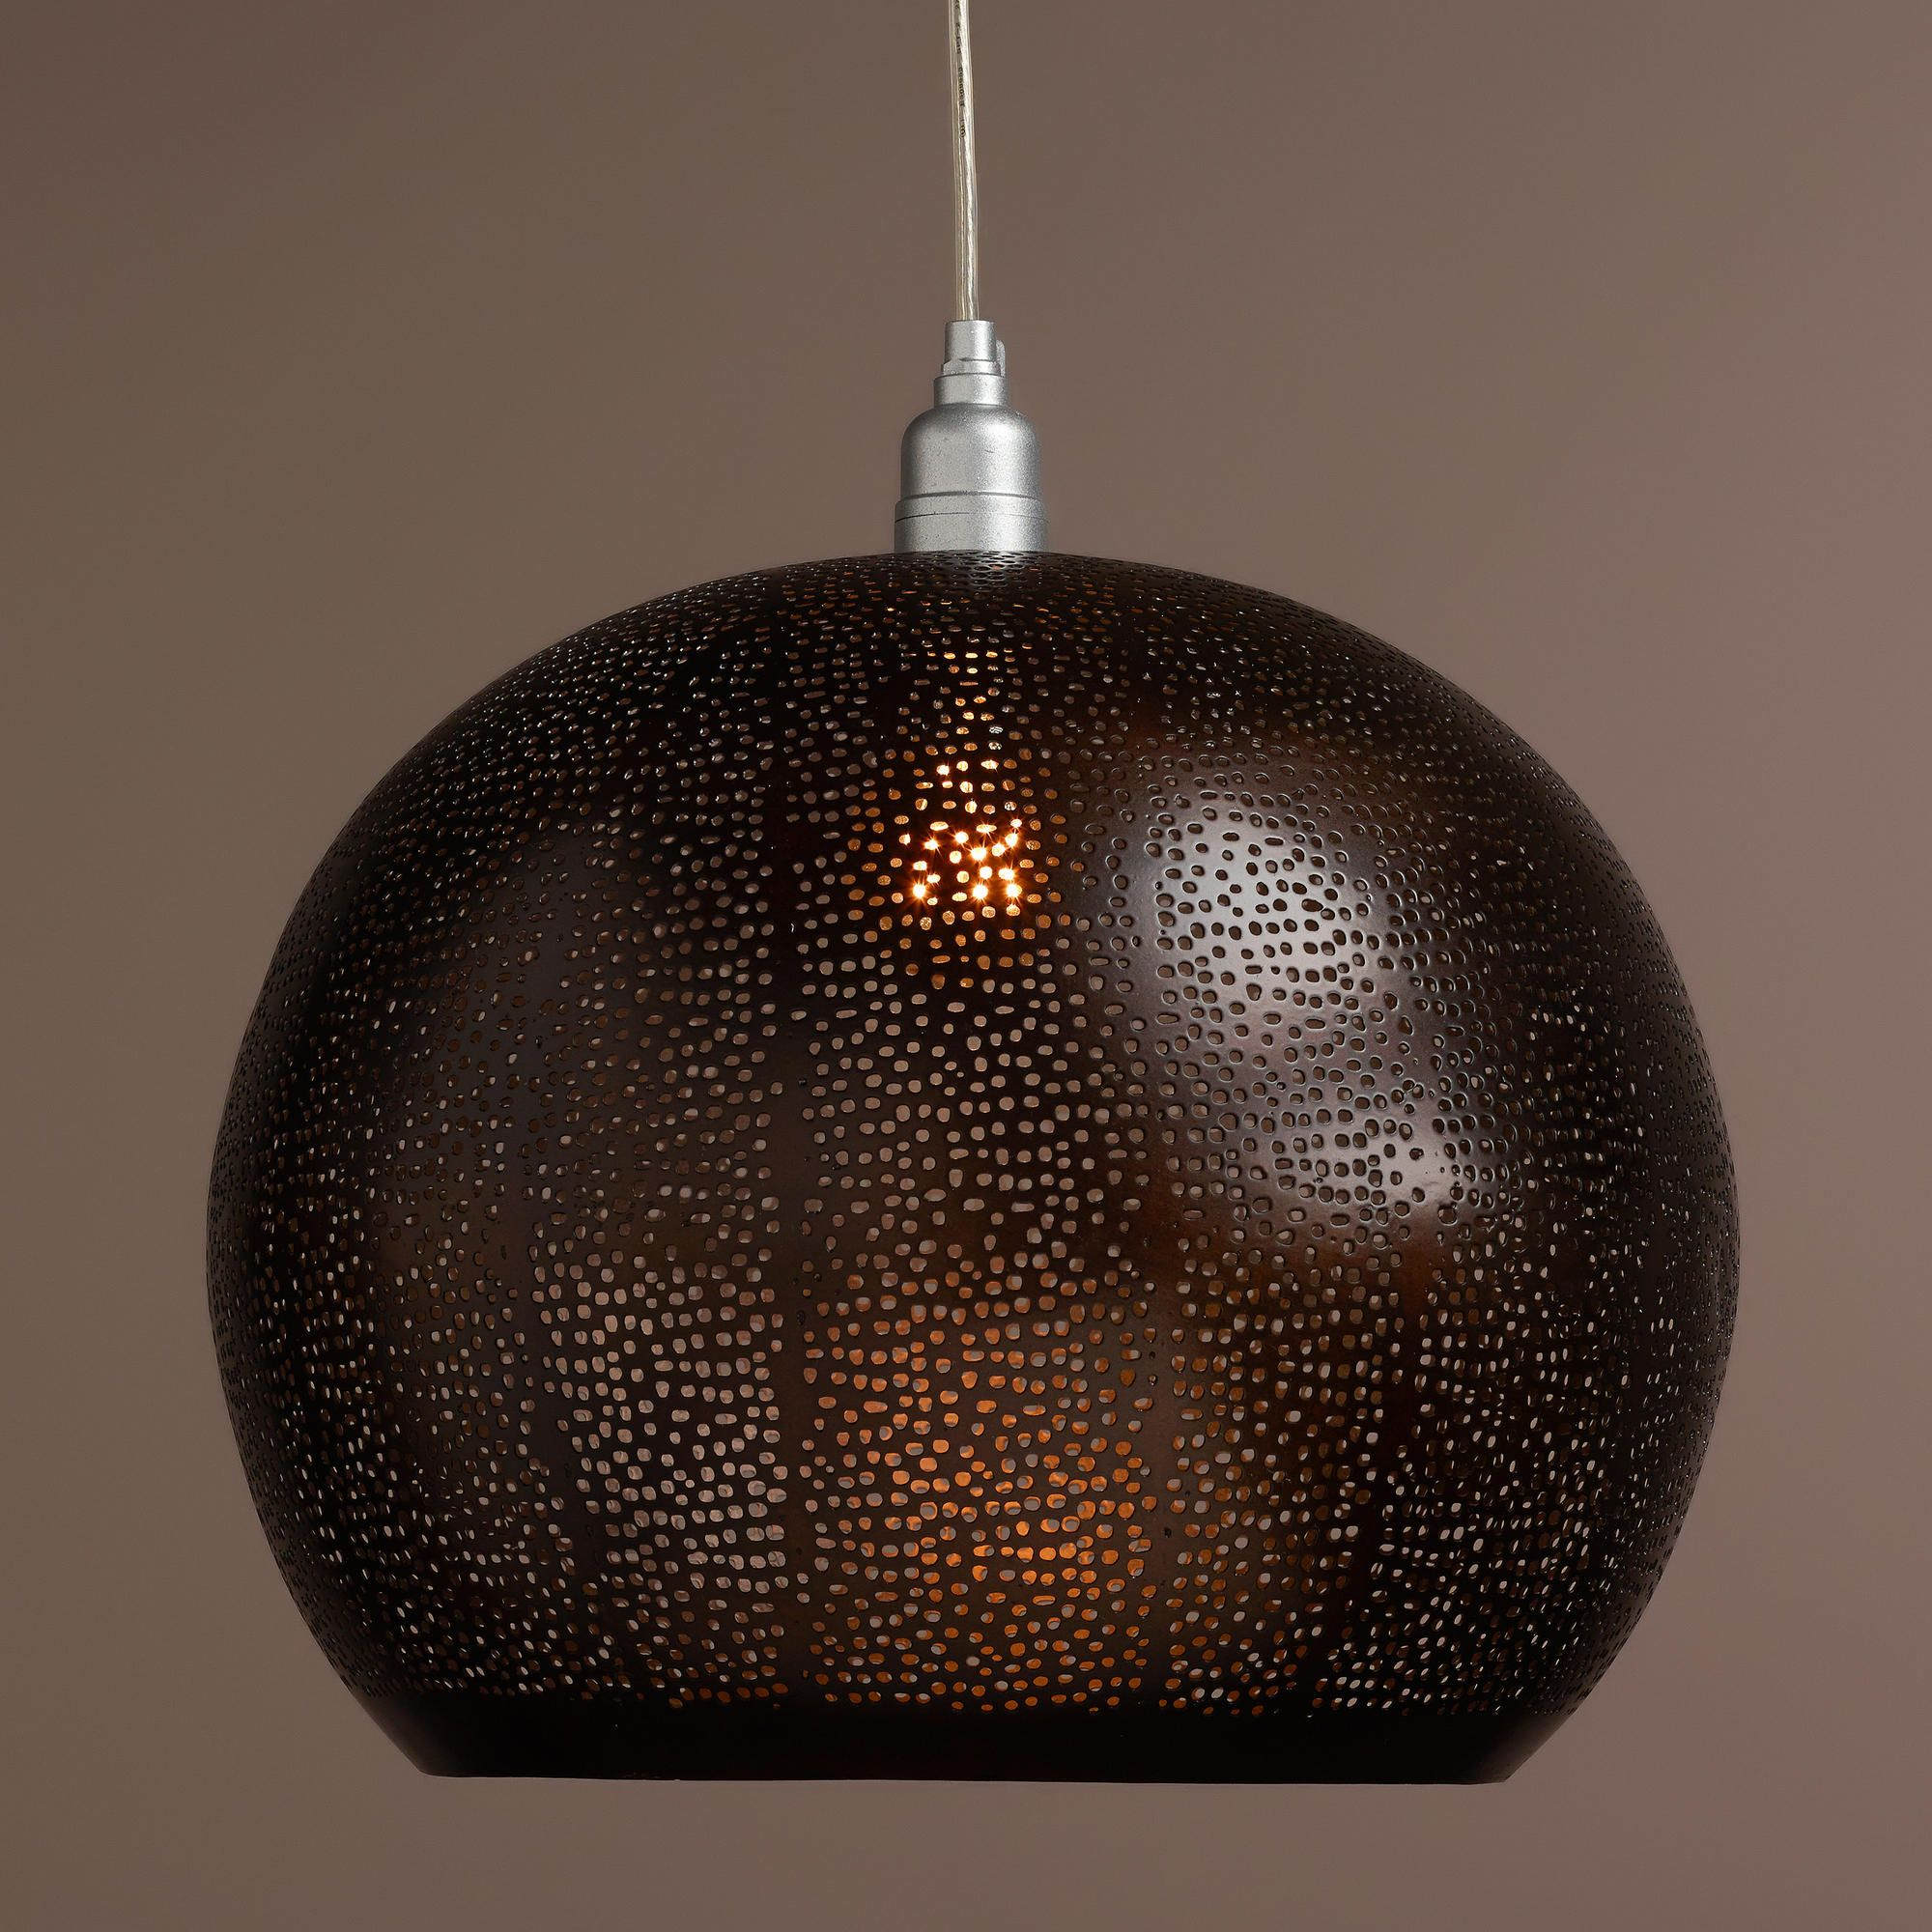 over ideas pendant top lights chains lamps hanging with lighting outdoor light